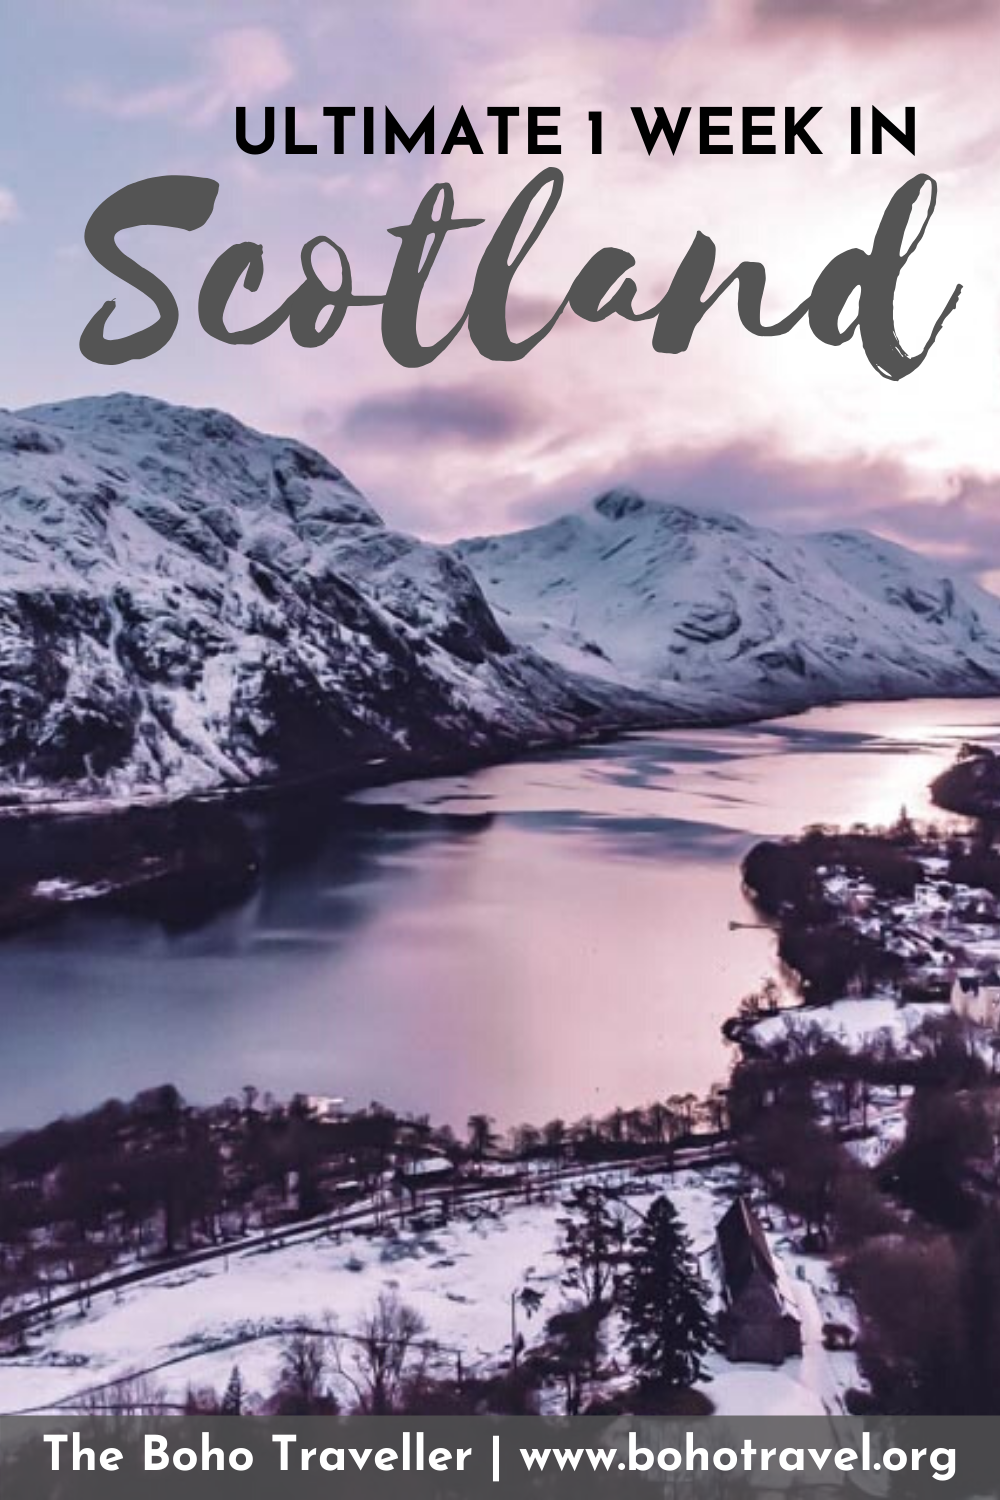 Scotland Itinerary - Planning a One Week Trip in Scotland -  THE ONLY SCOTLAND GUIDE YOU WILL NEED! This guide to Scotland is completely comprehensive!  From wh - #AdventureTravel #AppalachianTrail #Backpacker #BackpackingEurope #BackpackingTips #BeachHotels #BeachResorts #Beaches #BudgetTravel #CancunMexico #CruiseTips #CruiseVacation #DisneyCruiseLine #DisneyCruiseTips #FamilyTravel #FamilyVacationDestinations #FamilyVacations #Hiking #InternationalTravelTips #Itinerary #KissimmeeFlorida #New